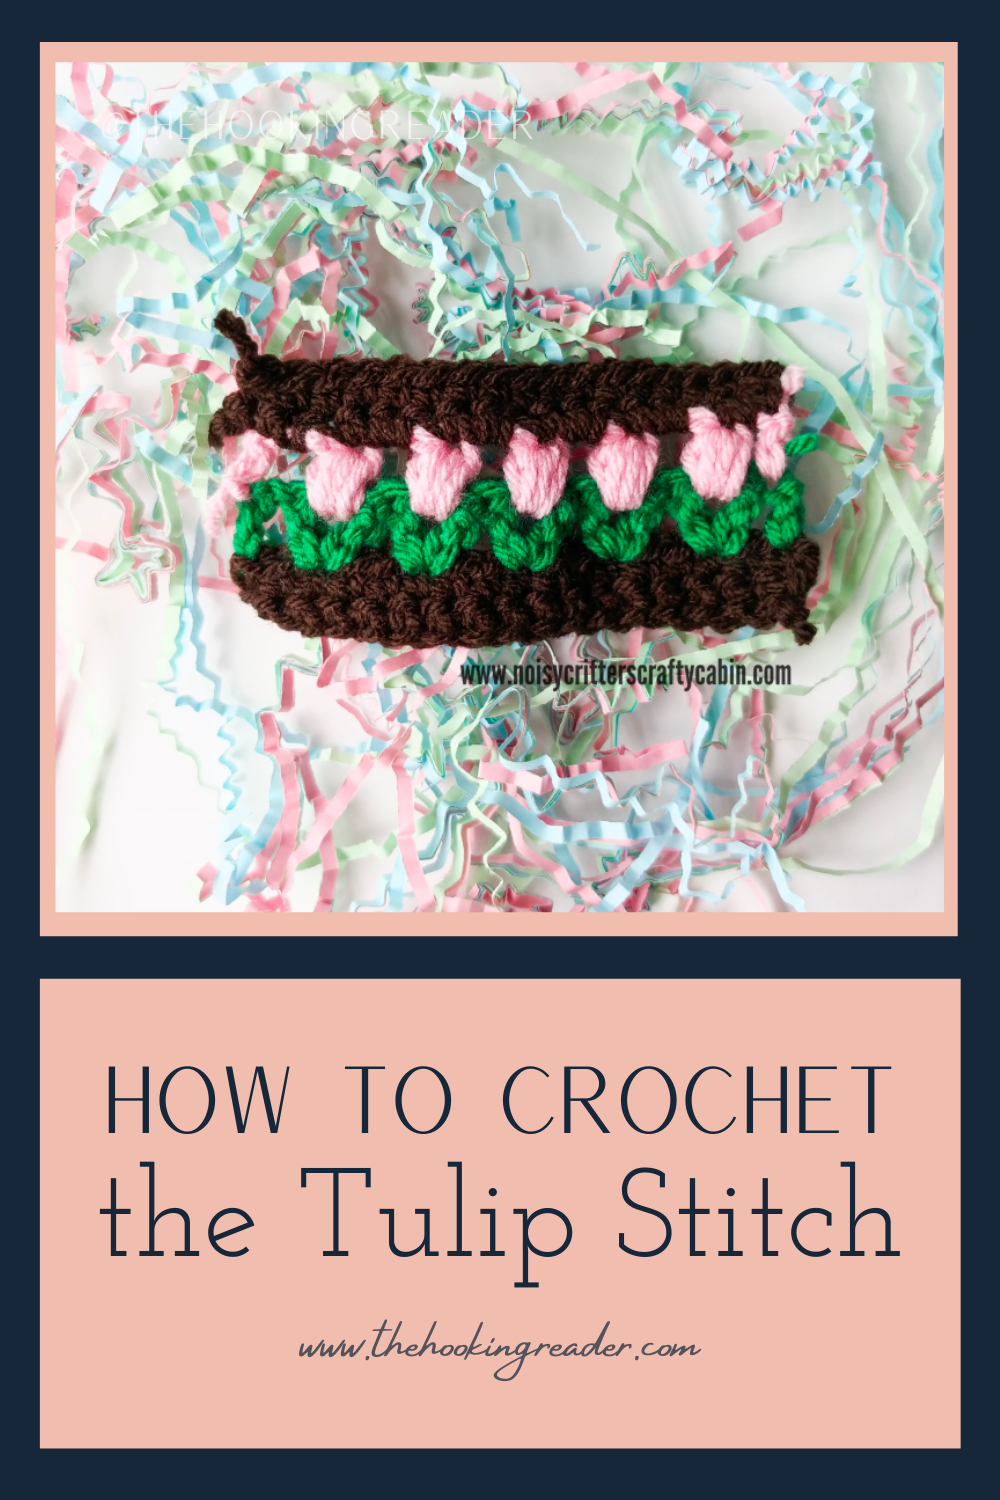 How to Crochet the Tulip Stitch